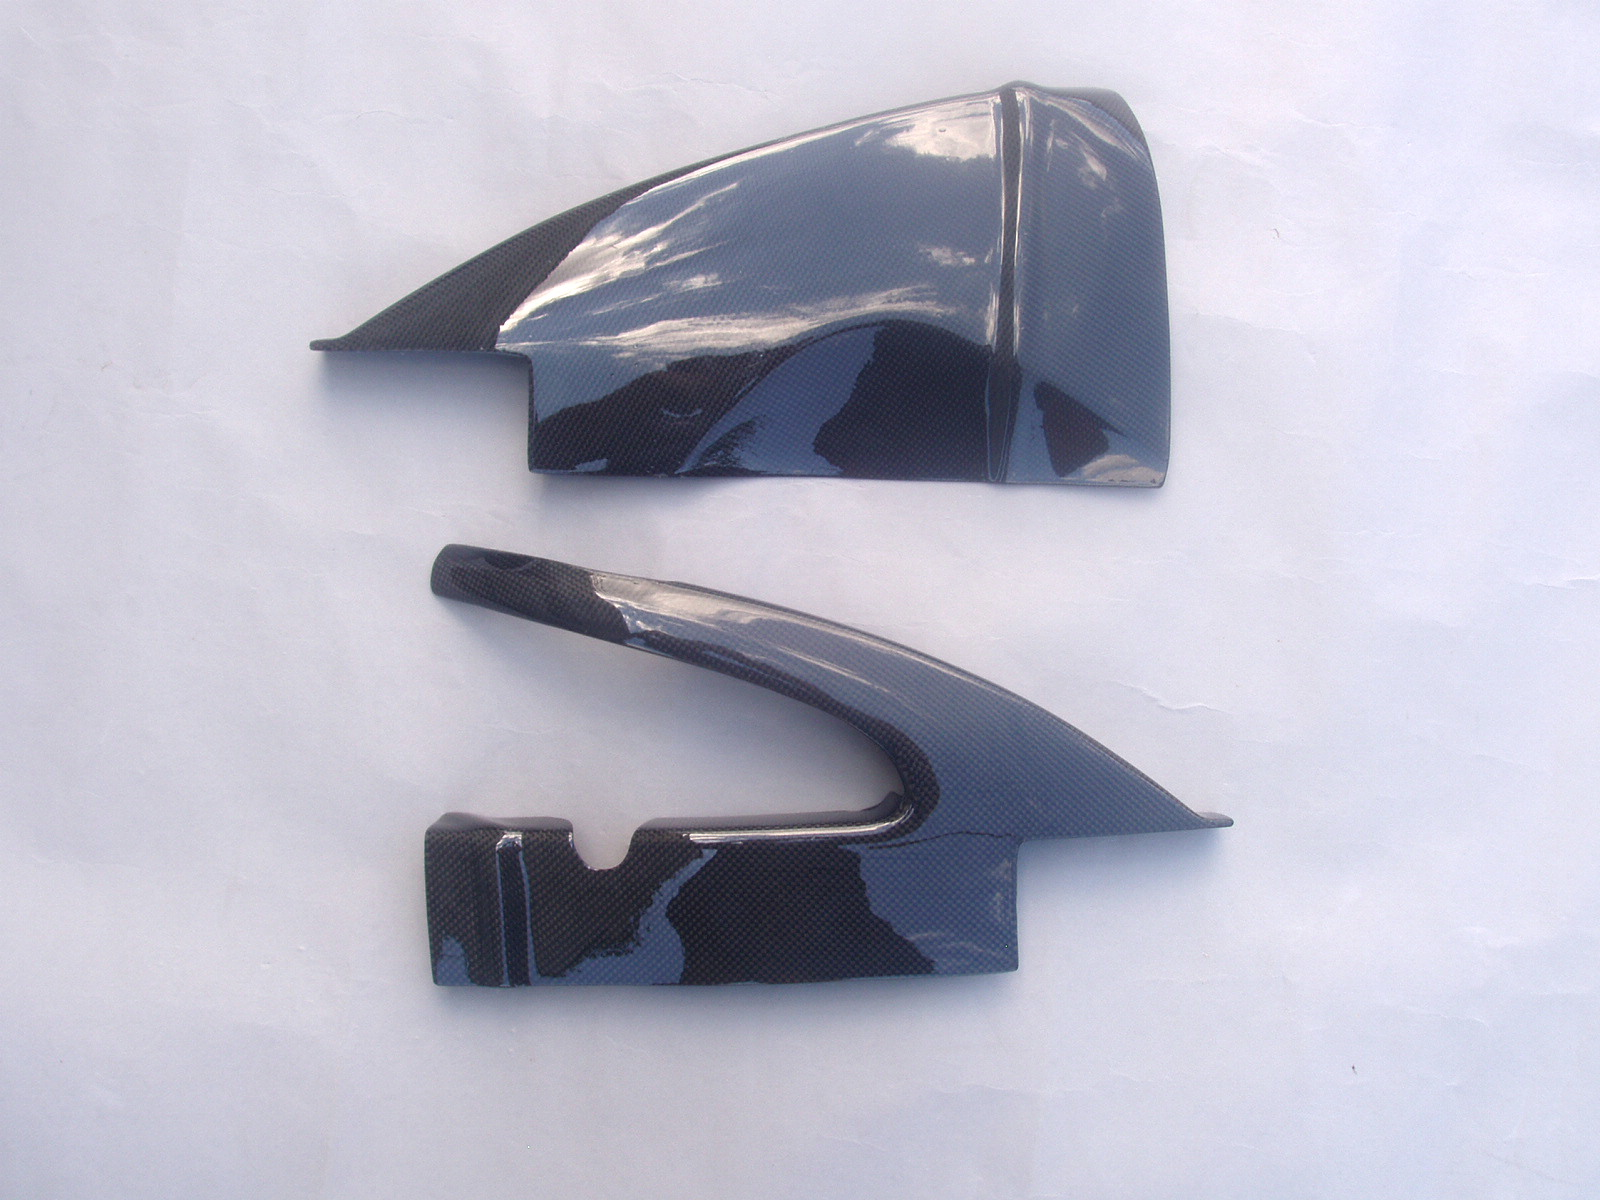 Swing arm cover for GSX-R600/750 K6,7